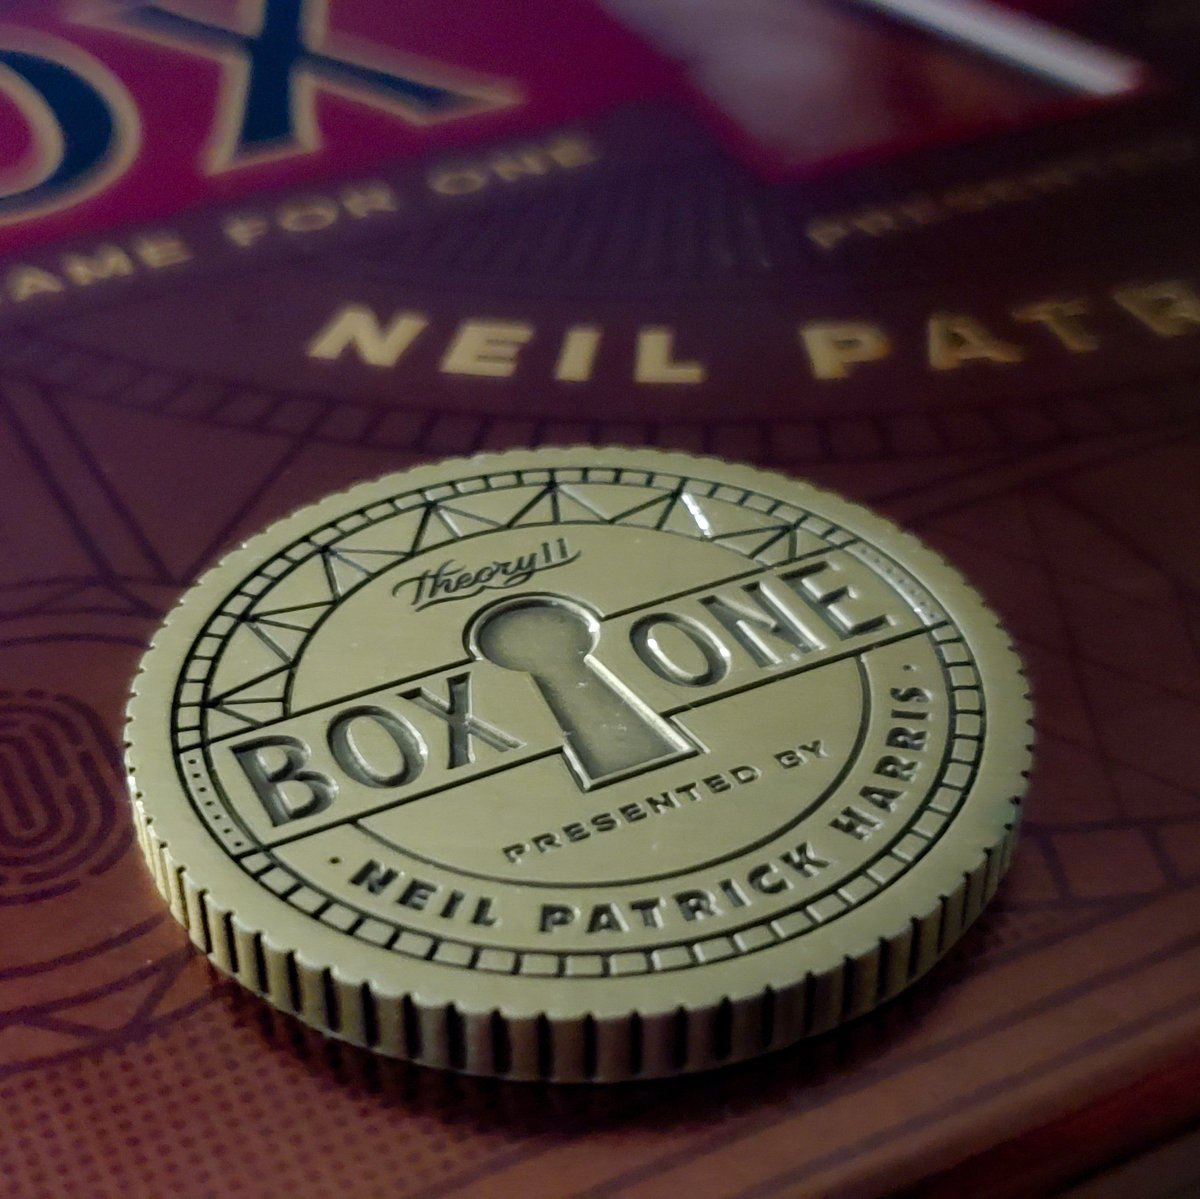 """#boxone is legen...wait for it...dary!  Watched @chrisramsay52 feature @ActuallyNPH talking about his newly released @theory11 BOX ONE game and I had to have it!  Highly recommend for anyone into puzzles and escape rooms.  NPH, when do we get """"BOX TWO""""???"""